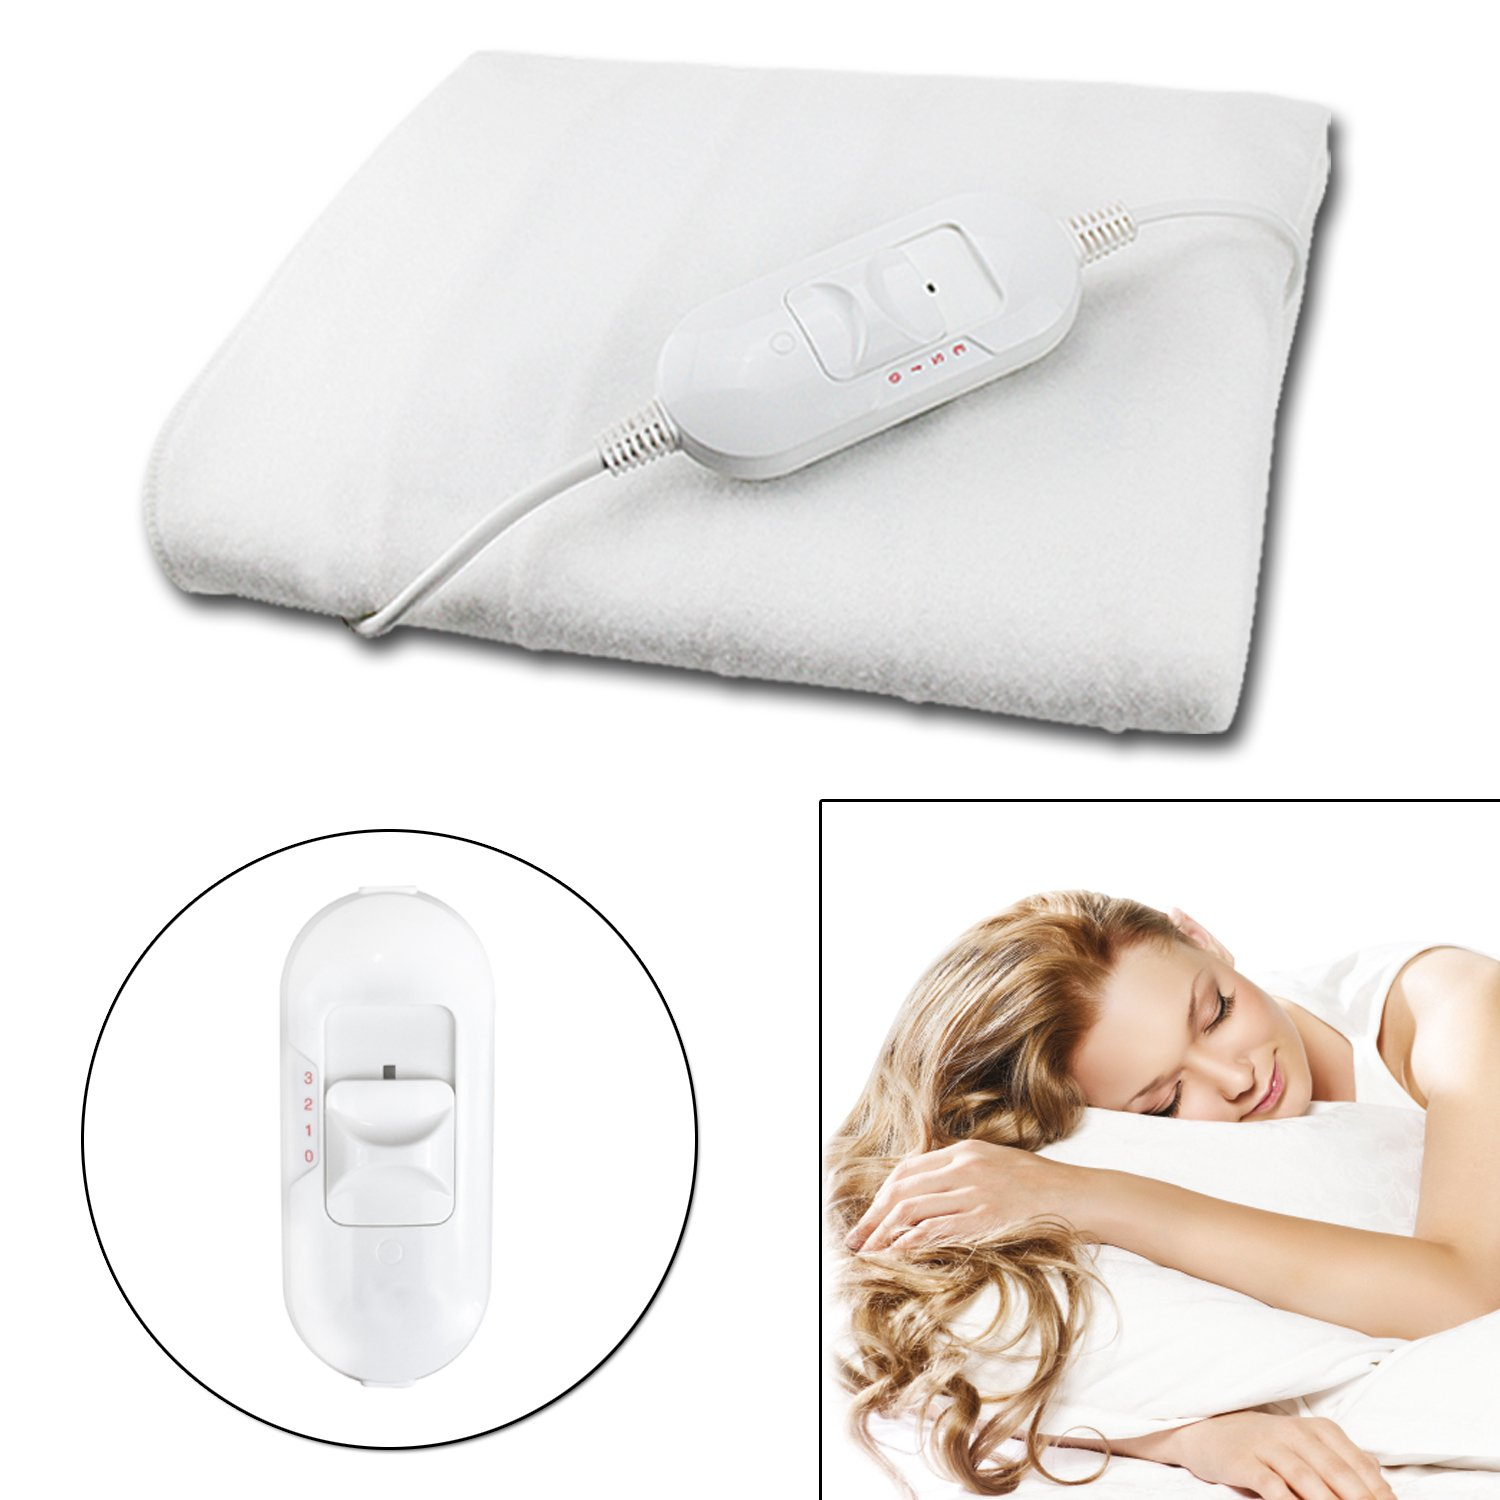 Guaranteed4Less Electric Blanket Heated Under Luxury Single Size Bed Washable Fleece